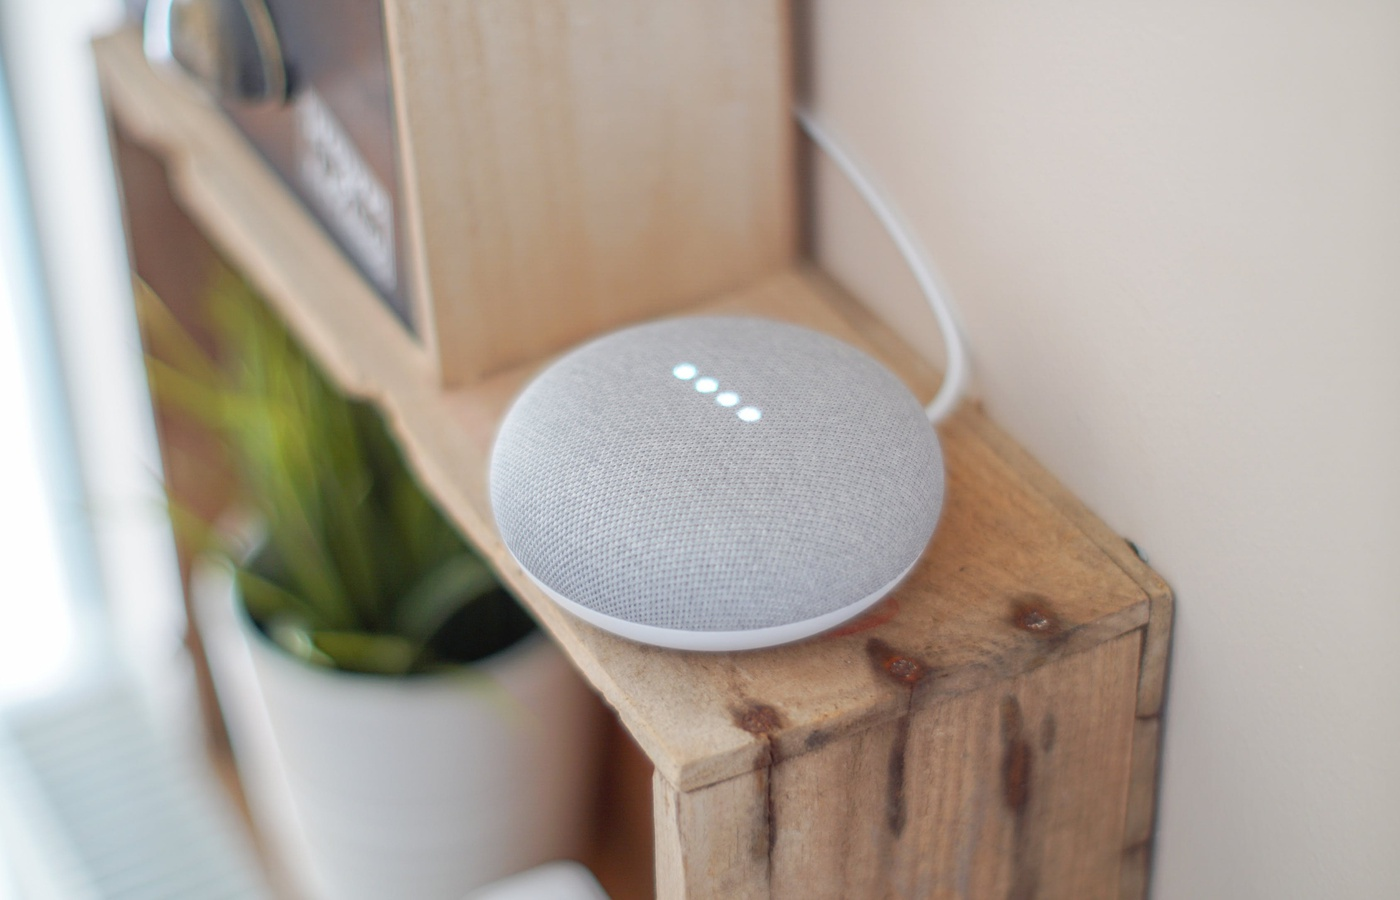 Smart Locks that Work with Google Home: 3 Options